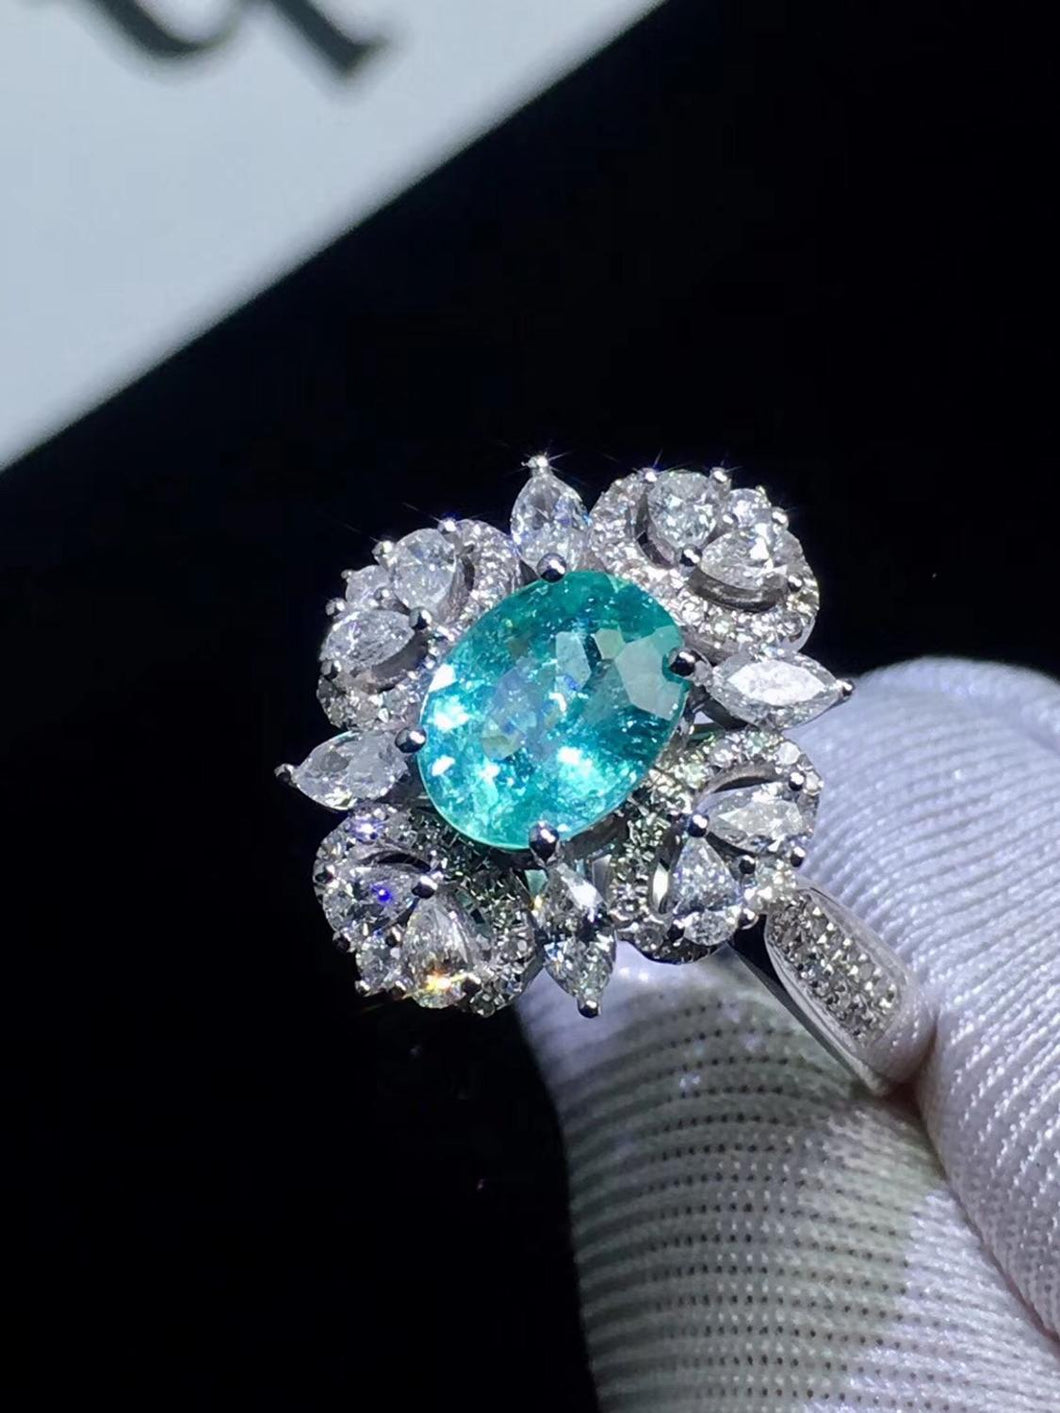 Paraiba Tourmaline Pendant Pure 18 K Gold Jewelry Real Paraiba Tourmaline Gemstone 0.91ct AGL Certificate Pendant Necklaces